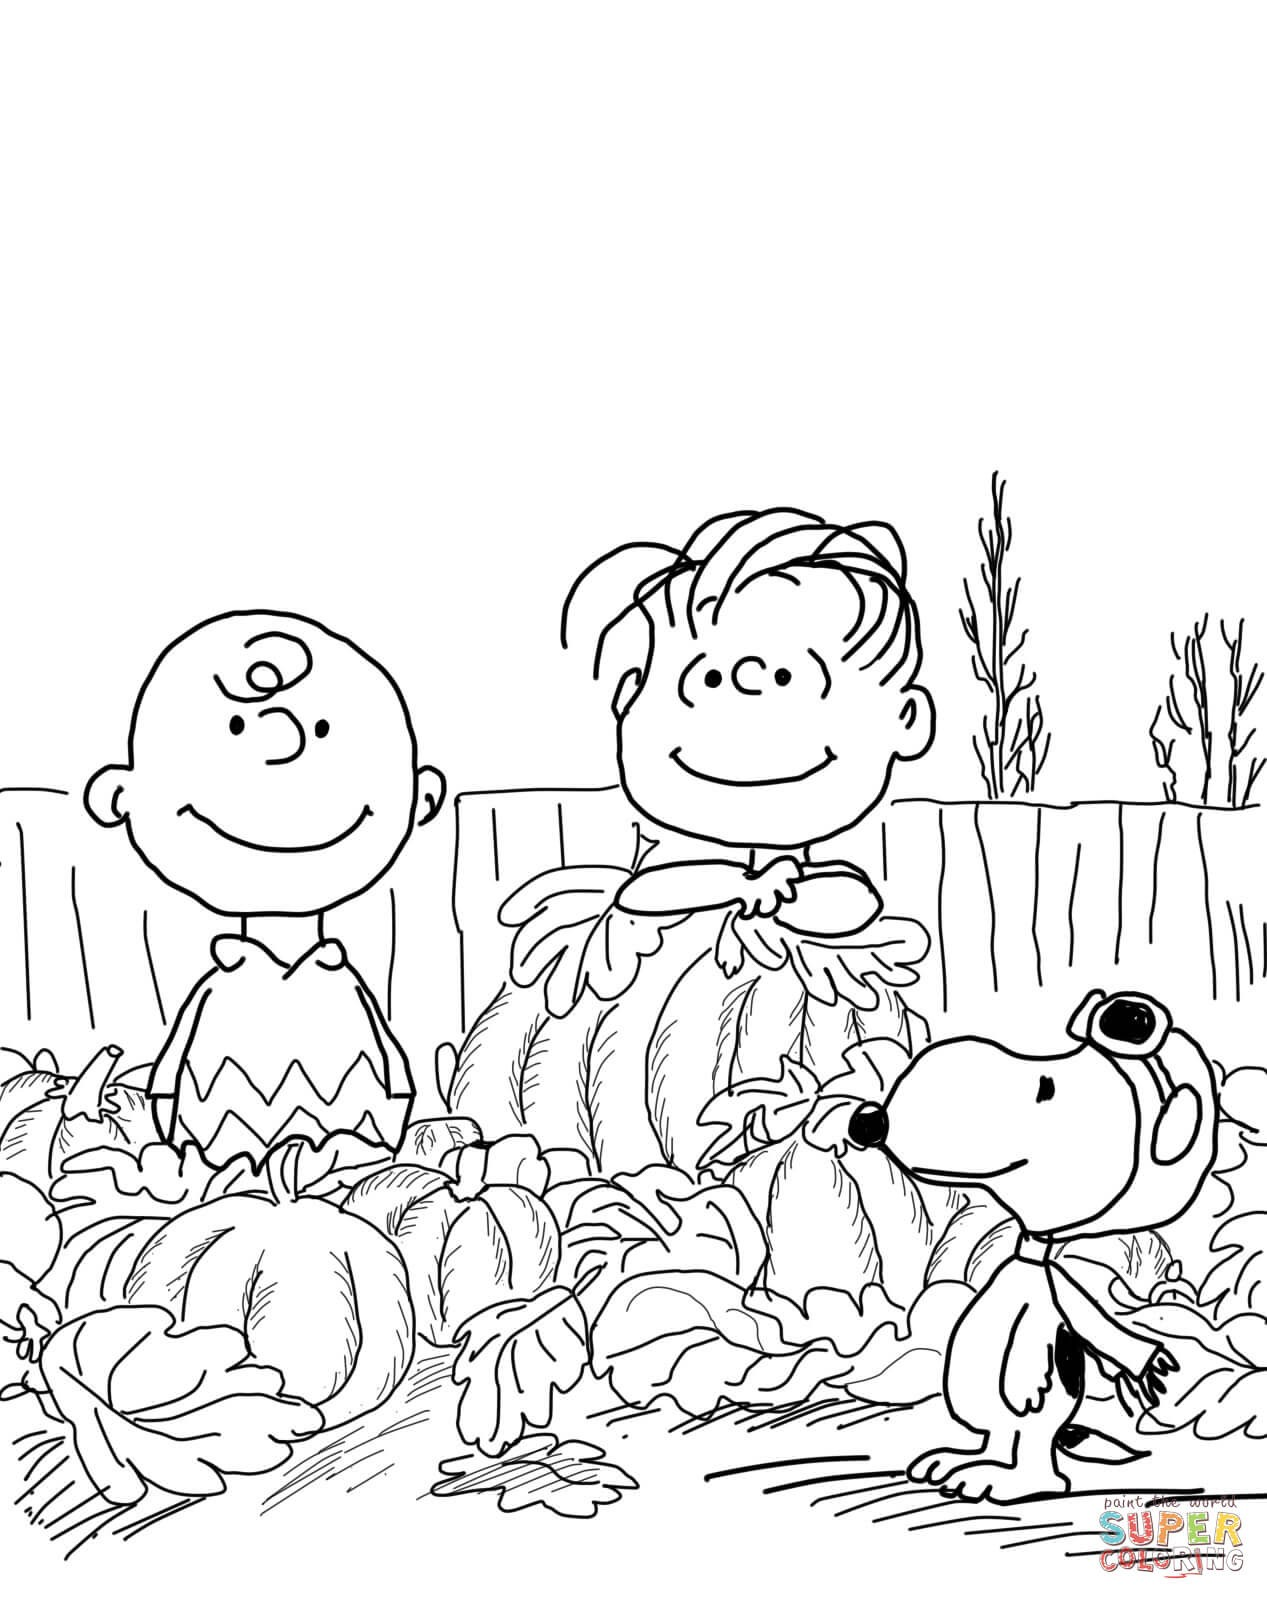 1267x1600 Charlie Brown And Friends Coloring Pages For Kids Inspirational